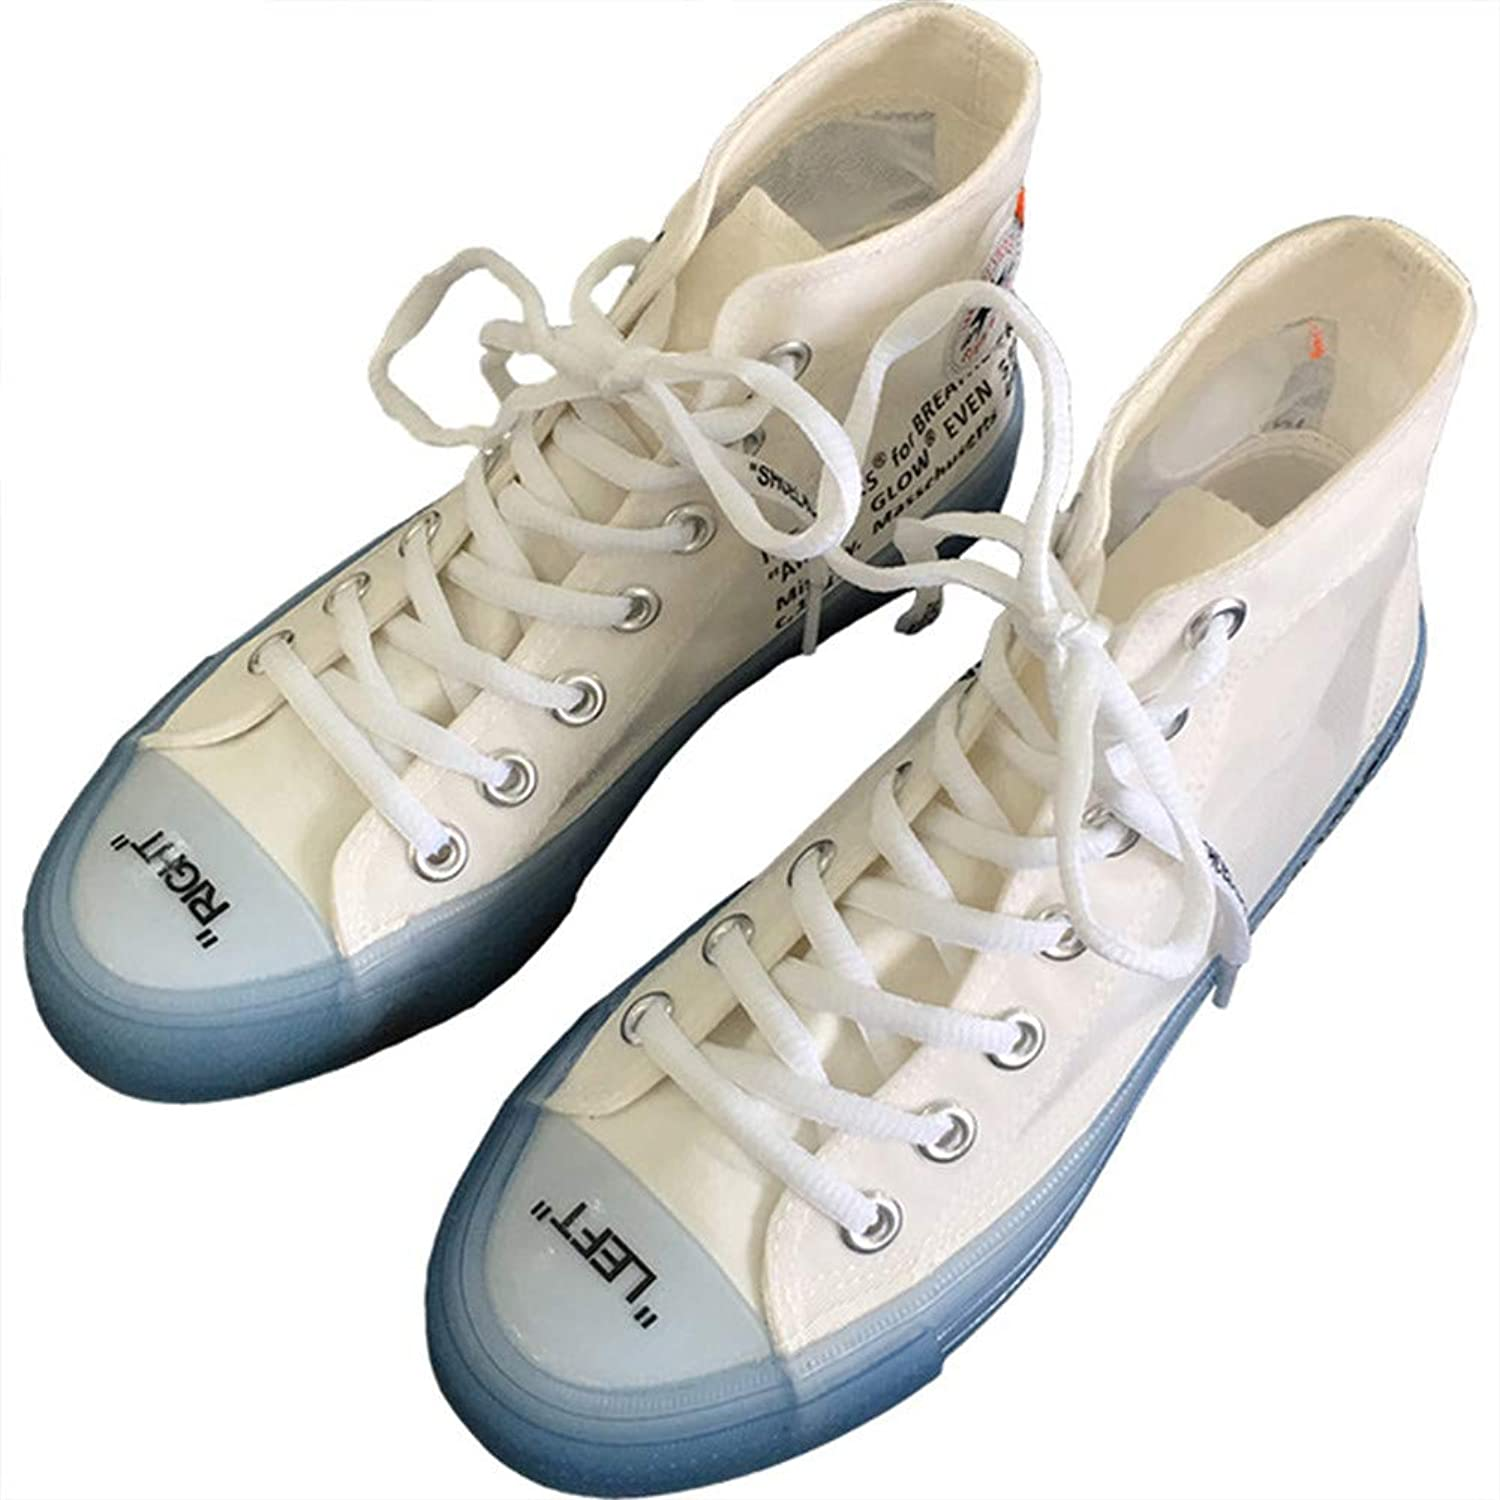 Mageed Anna Women Casual shoes New Soft Canvas shoes High Top Unisex Canvas shoes